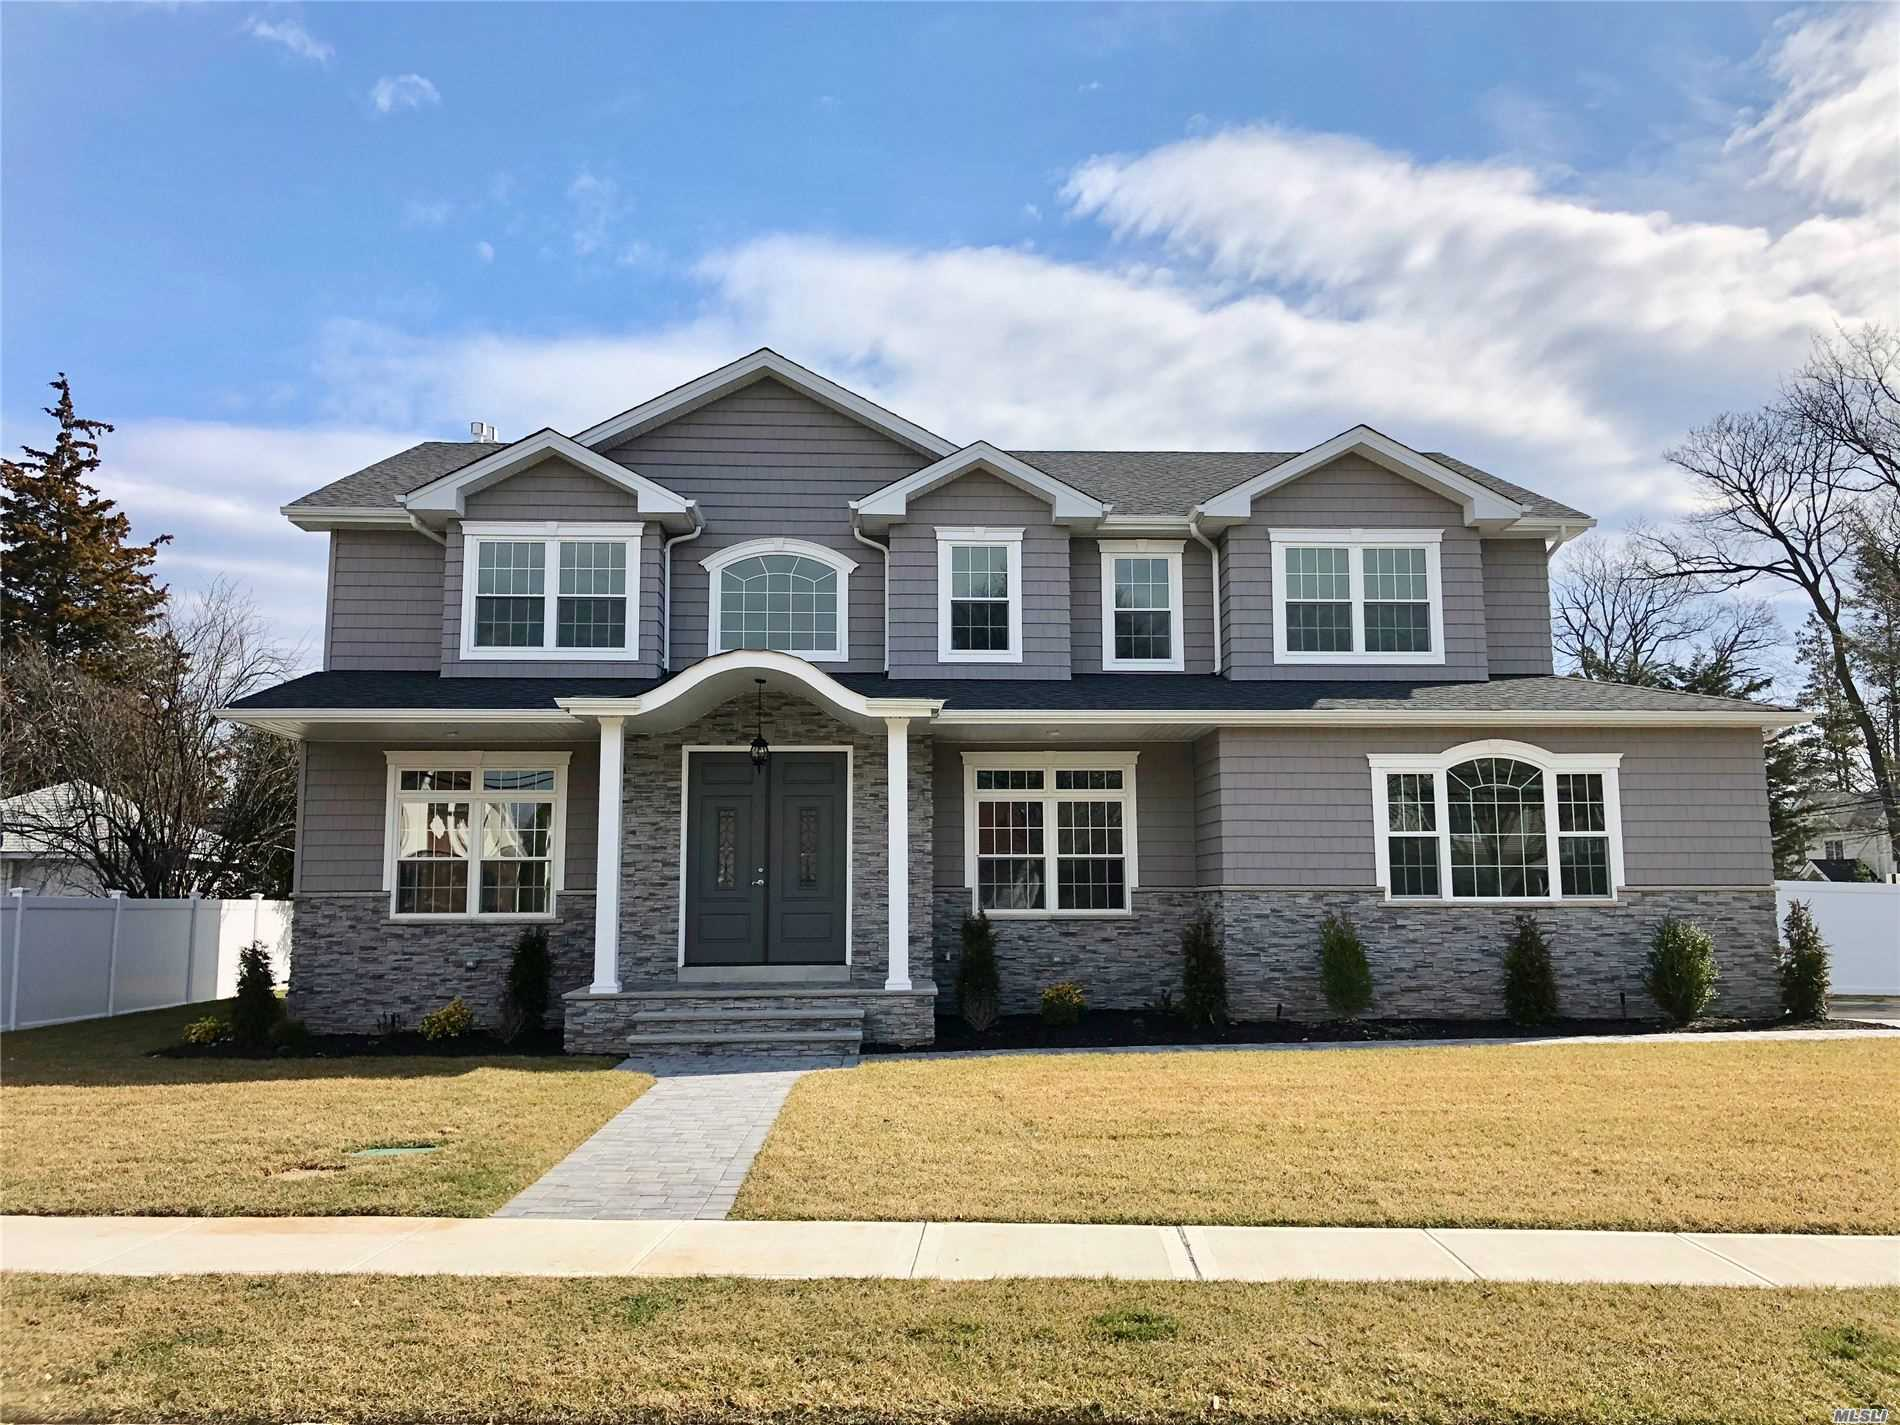 Prime North Syosset! 3800 Sq Ft. Home Featuring A Grand 2 Story Entrance,  5 Bedrooms, 4.5 Bathrooms, , Sun-Filled Master Br W/Tray Ceiling,  His And Hers Wic, State Of The Art Kitchen W Center Island + Ss Appliances,  Walk In Pantry , Bedroom On Main Level W/ Full Bath . Den W/ Gas Fireplace,  Laundry Rm On 2nd Floor, Full Basement W Ose, Fenced Back Yard,  Process Of Being Built..